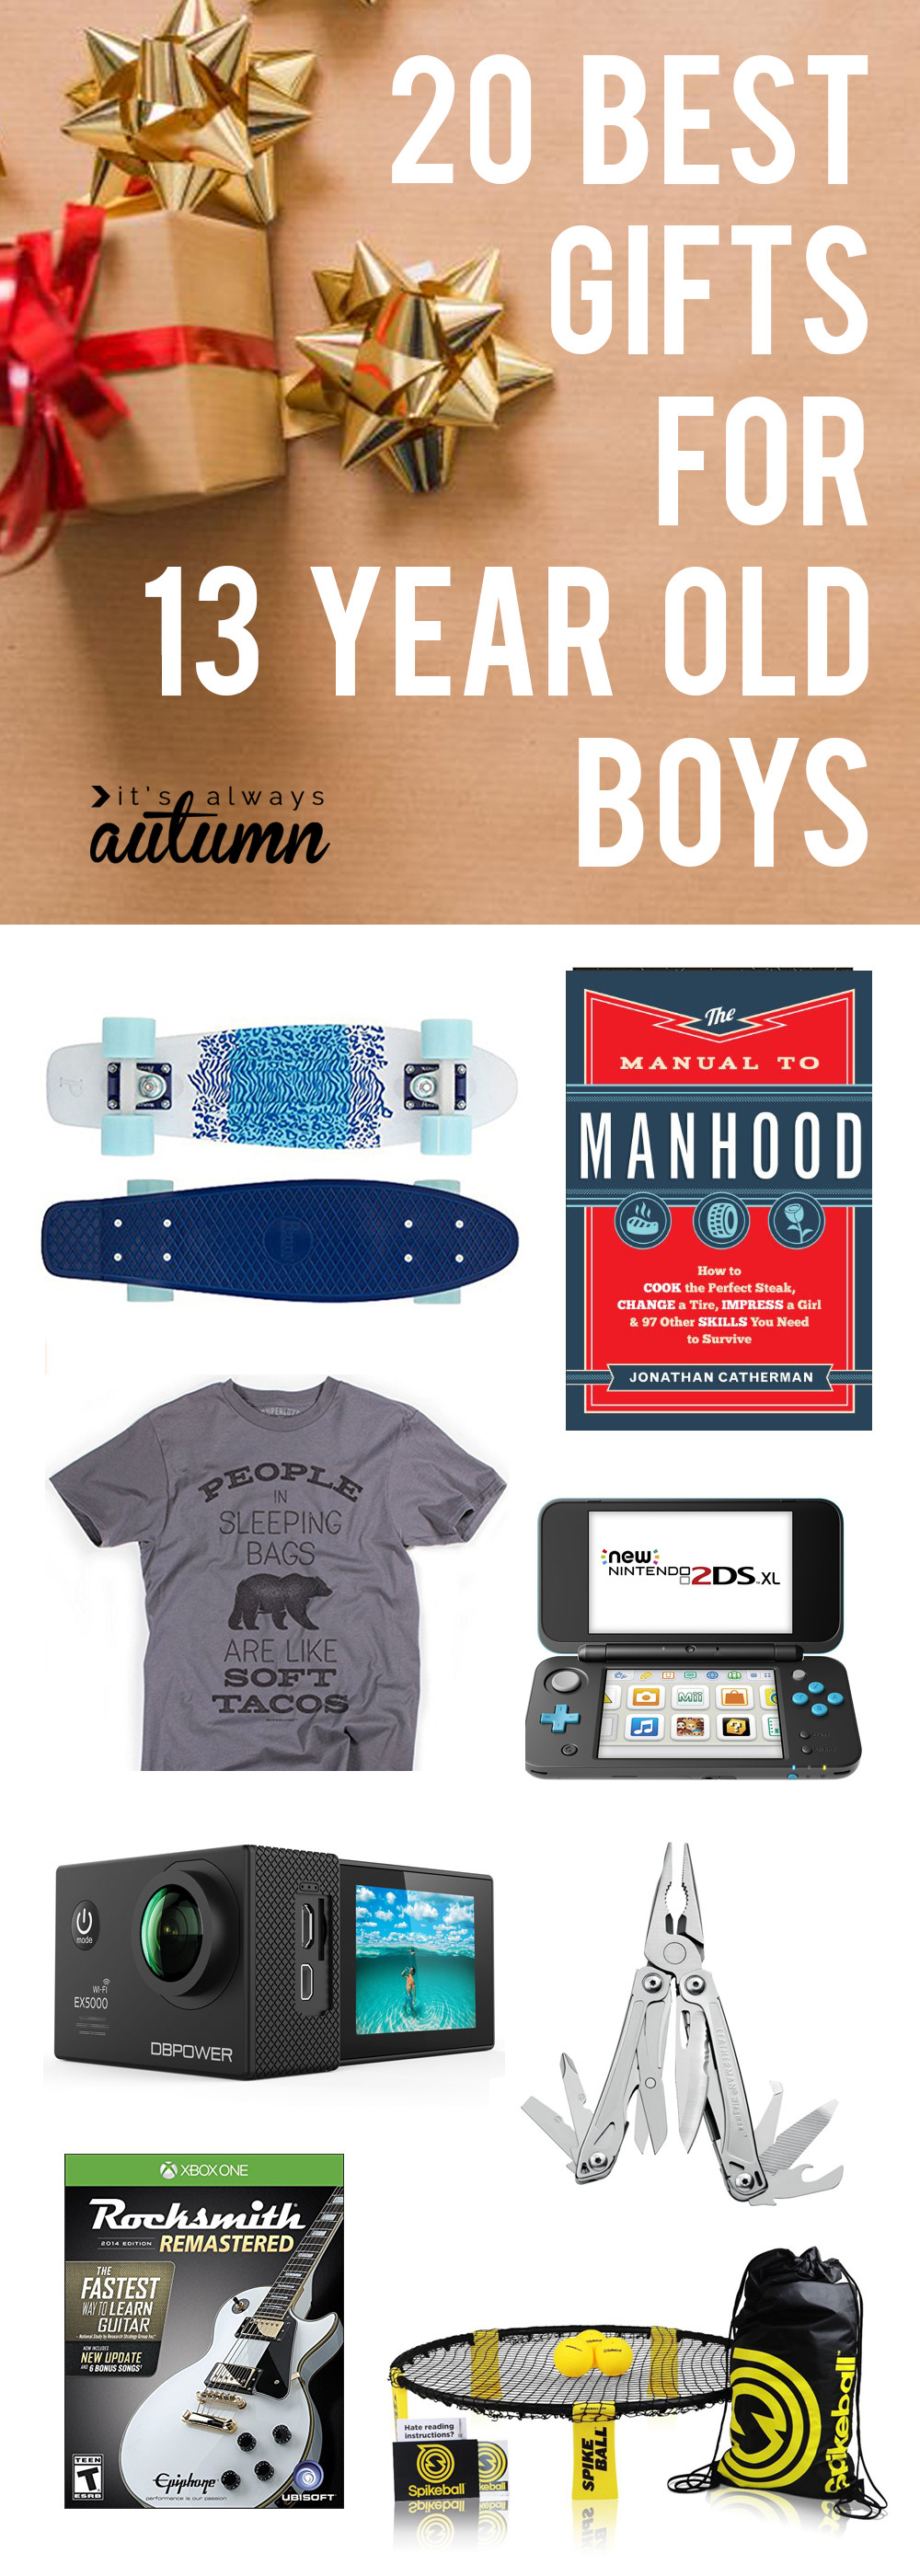 Best ideas about Christmas Gift Ideas For 13 Yr Old Boys . Save or Pin best Christmas ts for 13 year old boys It s Always Autumn Now.